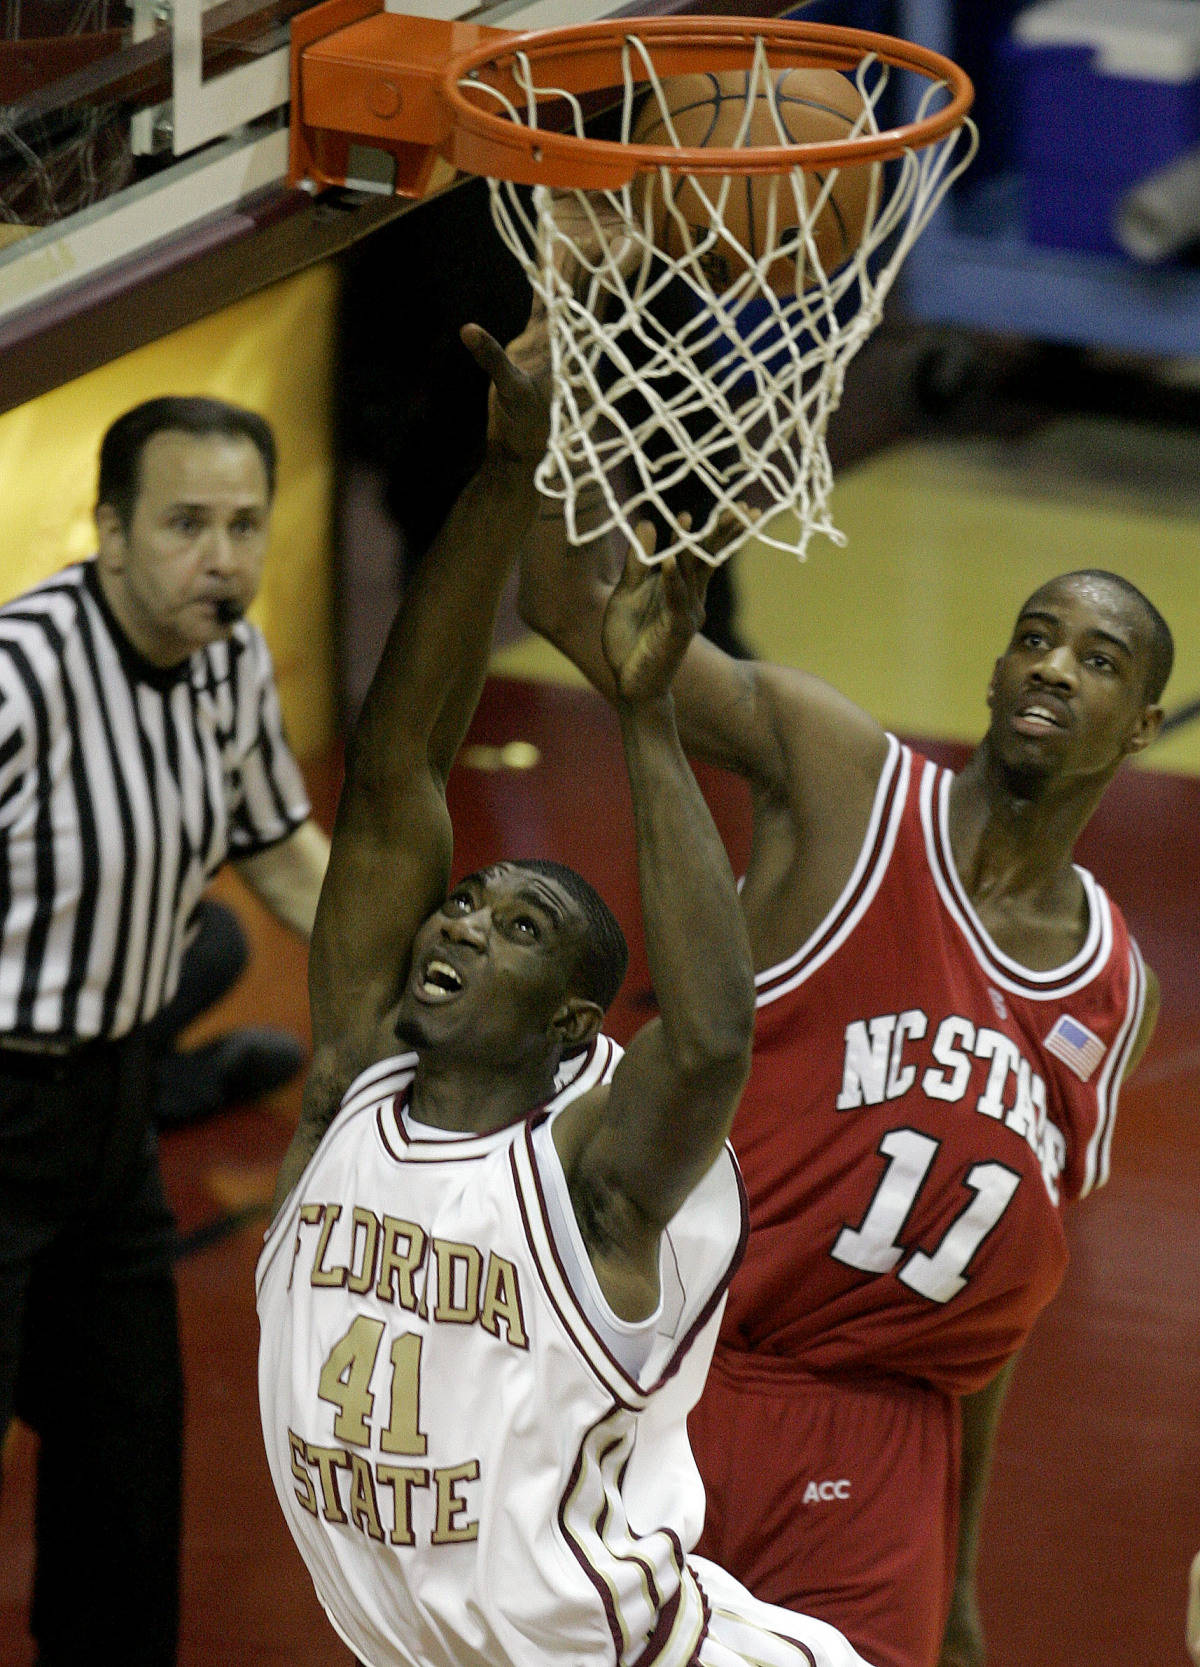 Florida State's Uche Echefu (41) is fouled by North Carolina State's Gavin Grant (11) during the first half of a college basketball game, Saturday, Feb. 24, 2007, in Tallahassee, Fla. (AP Photo/Phil Coale)